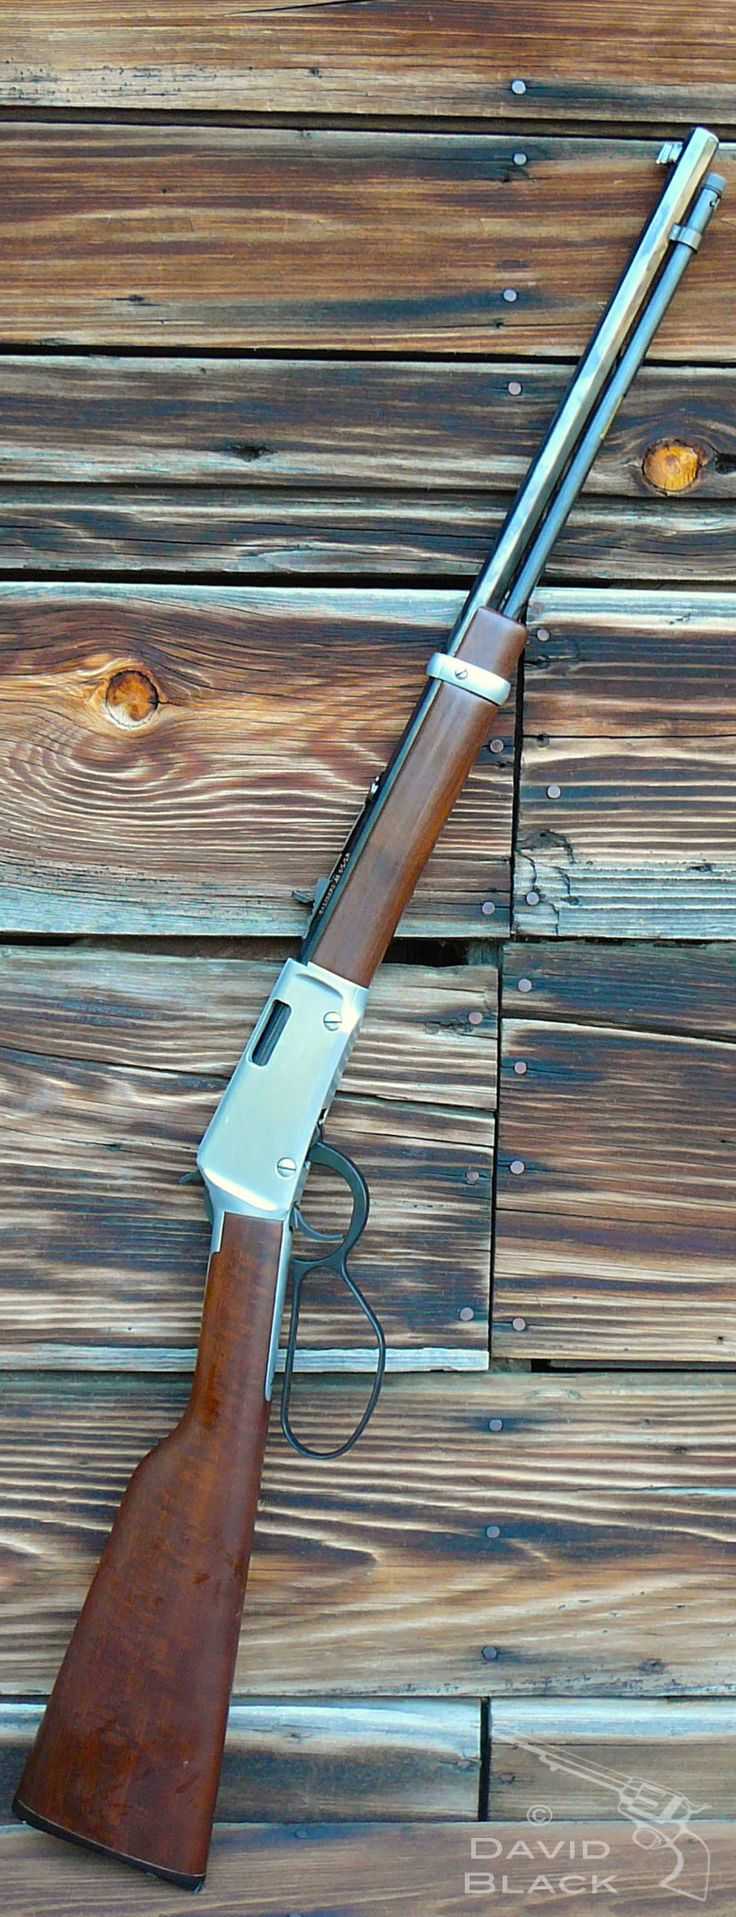 Lever Action Rifle - Henry Frontier, octagonal barrel and large lever loop. Custom coloring. Great 22 very accurate and fun to shoot.